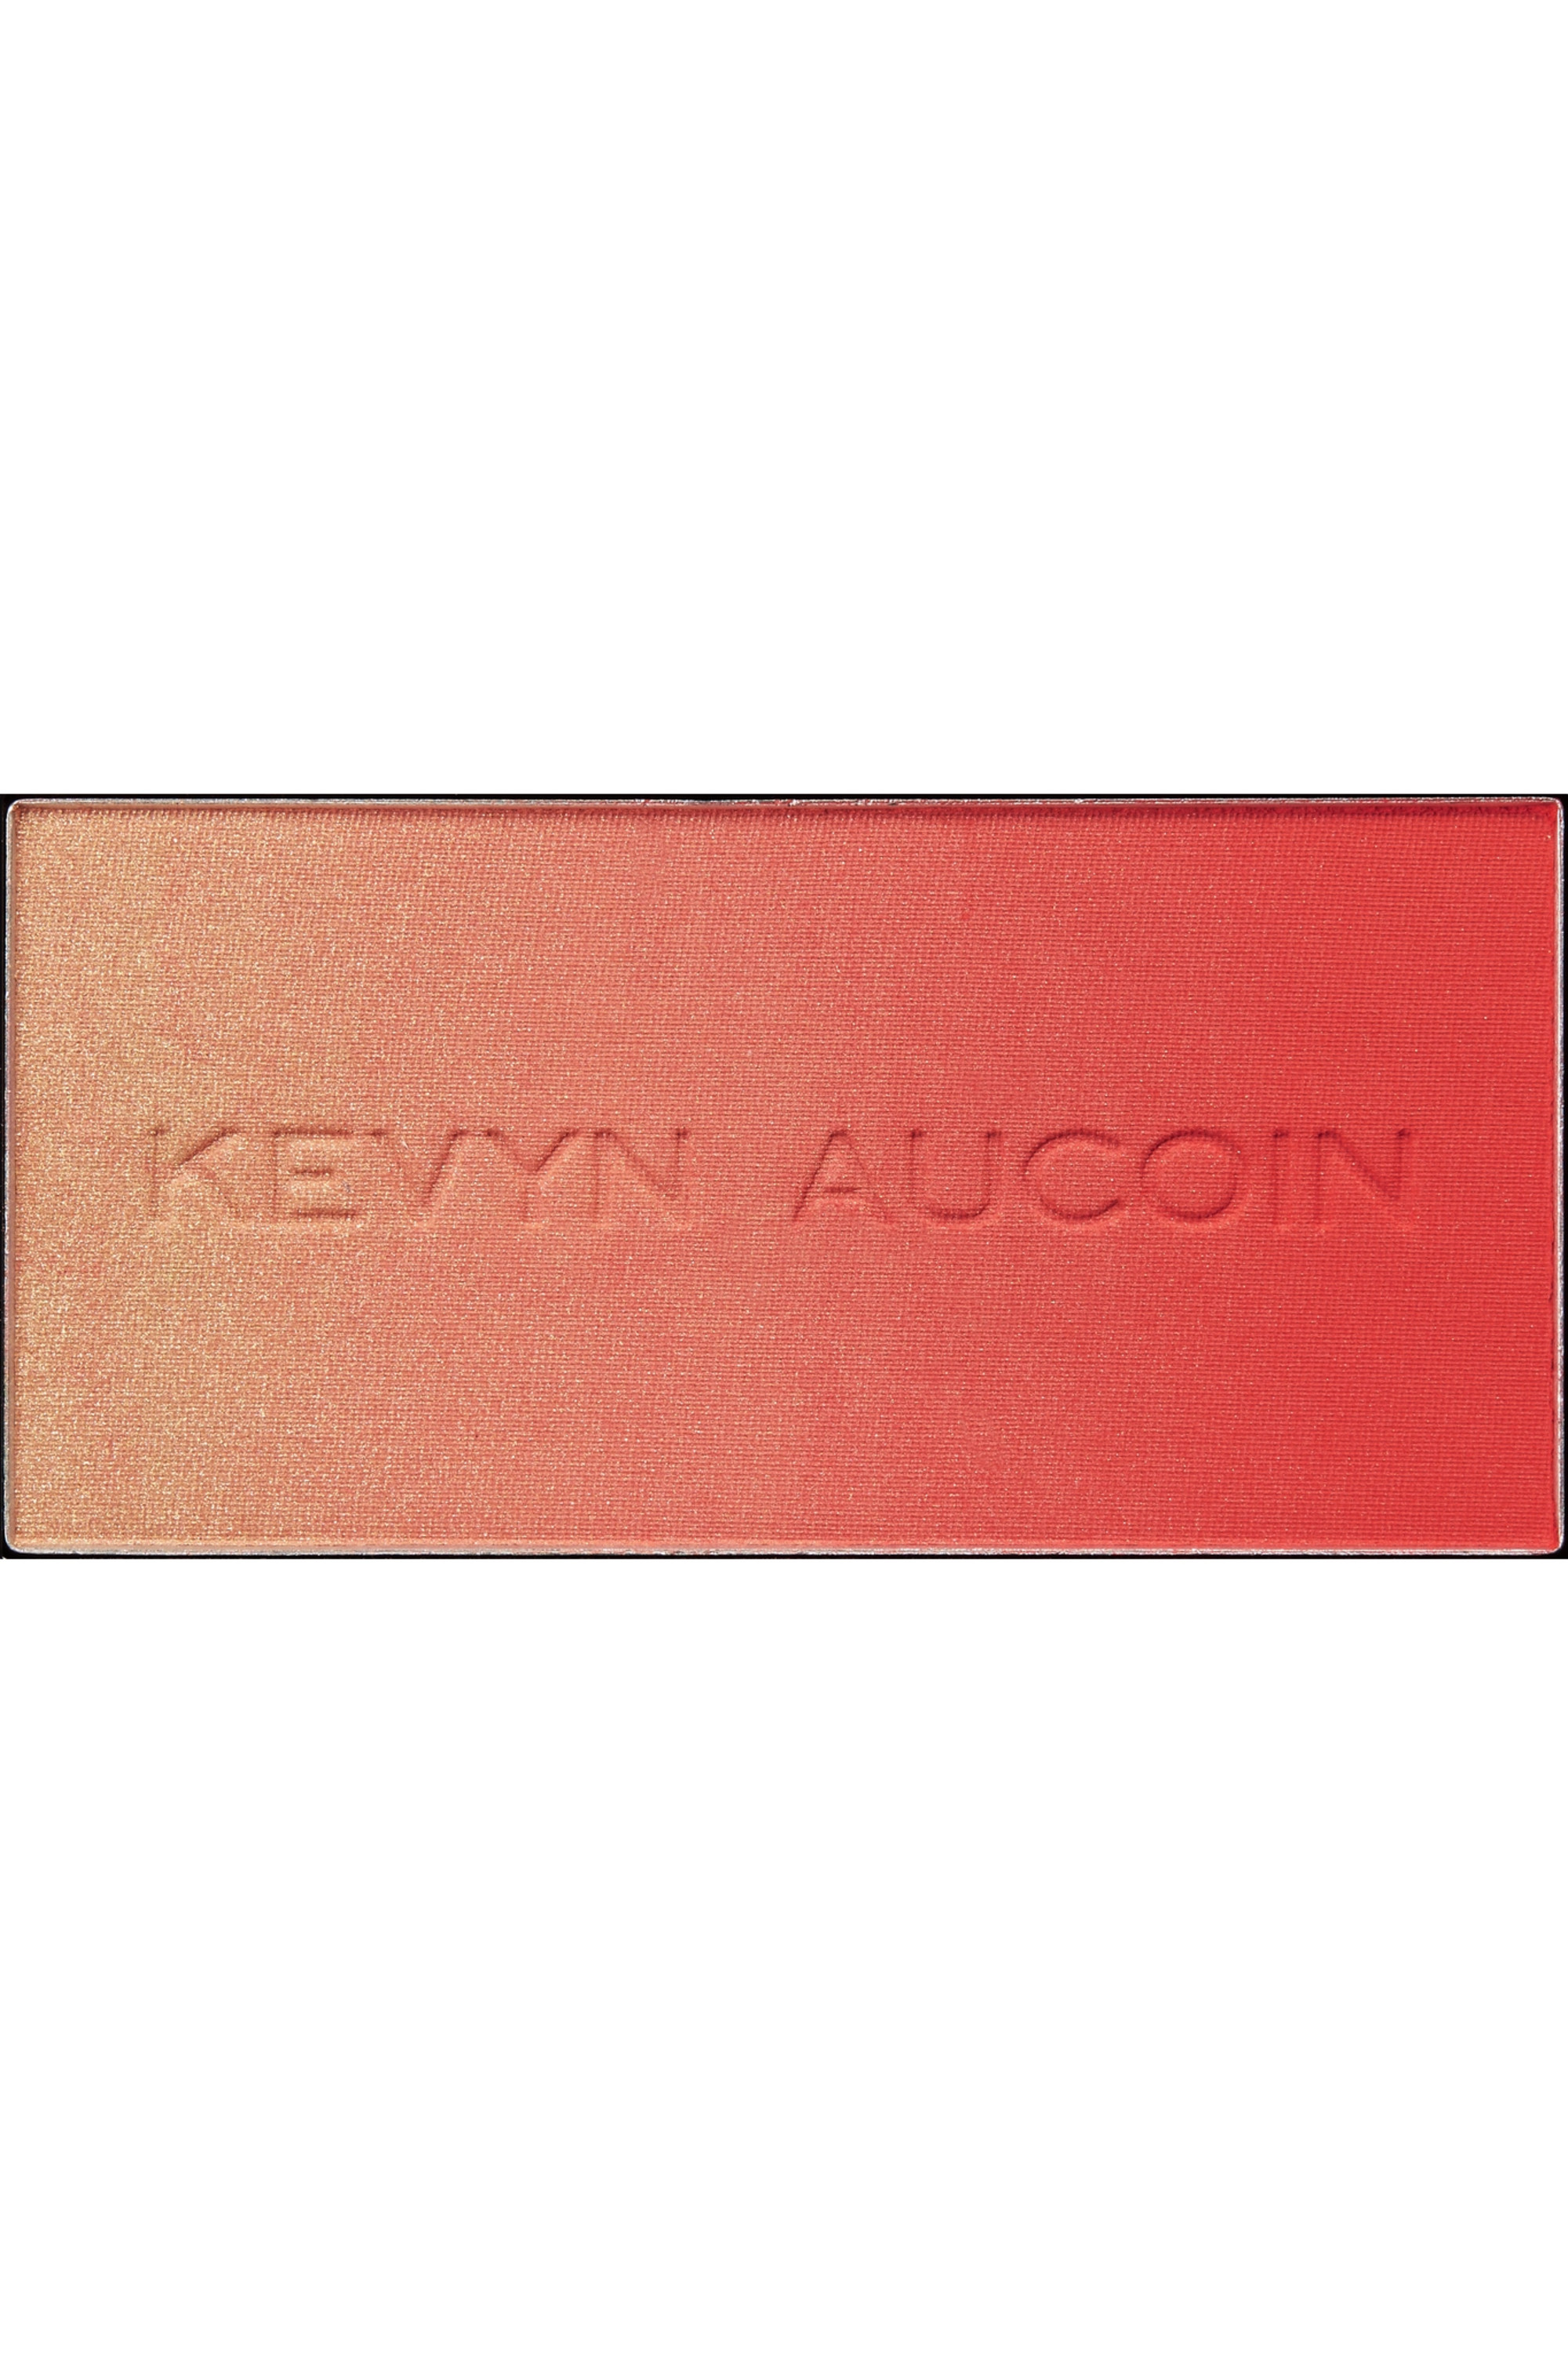 KEVYN AUCOIN The Neo Blush - Sunset